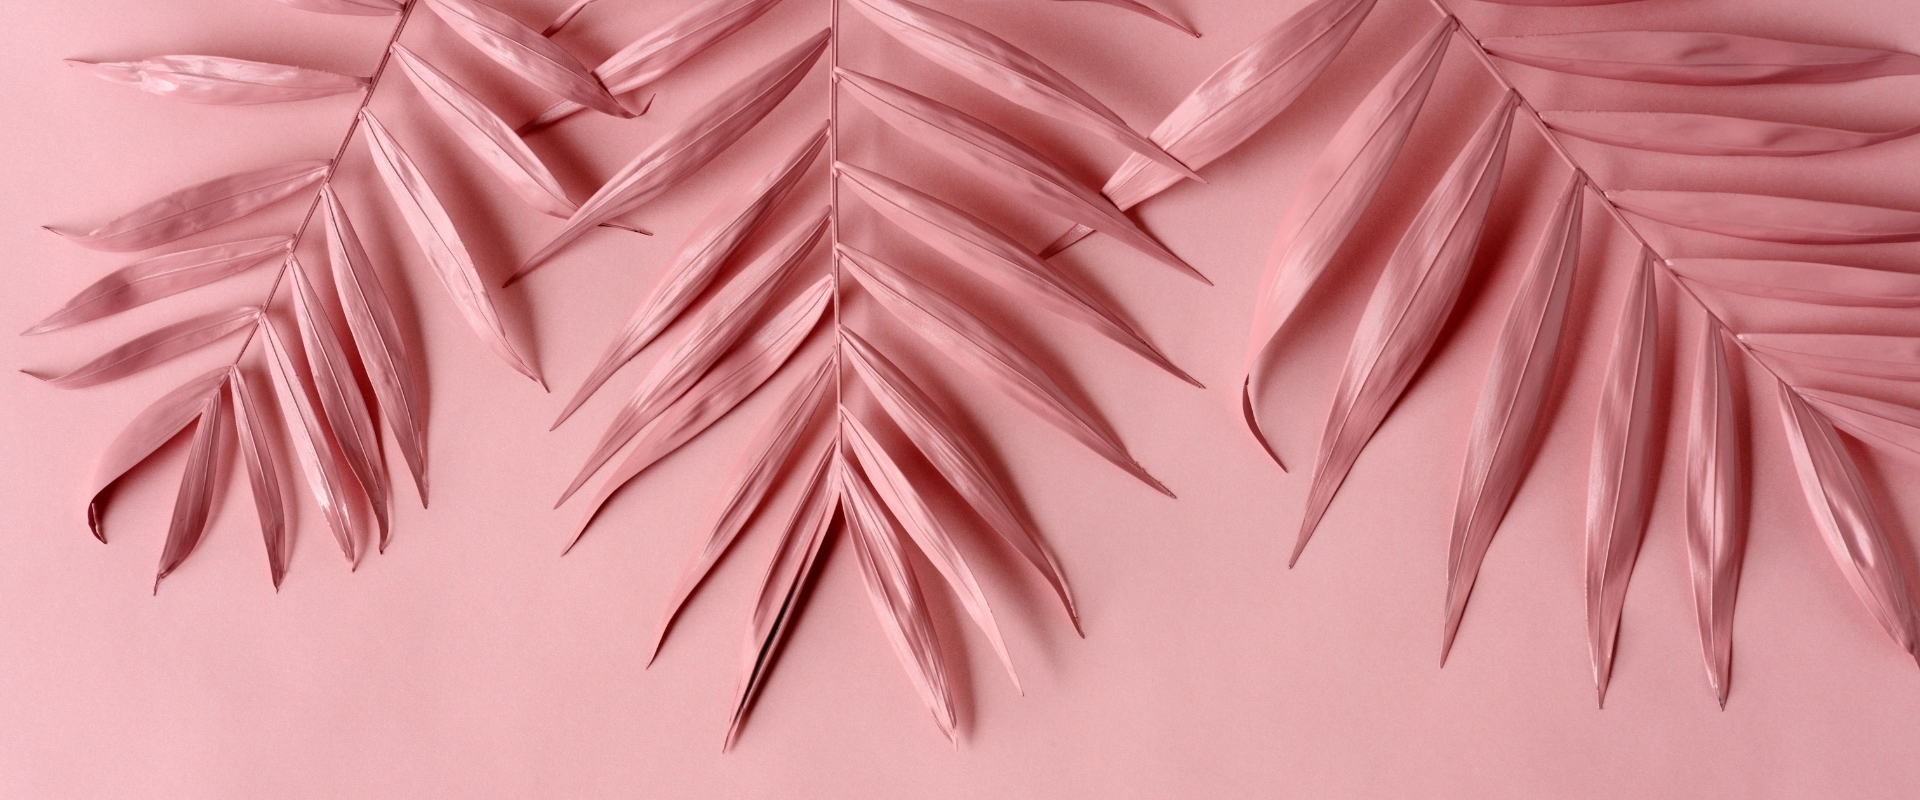 Hello Sticky - Shop - Peel & Stick Removable Wallpaper - Pink Wallpaper - Collection Header